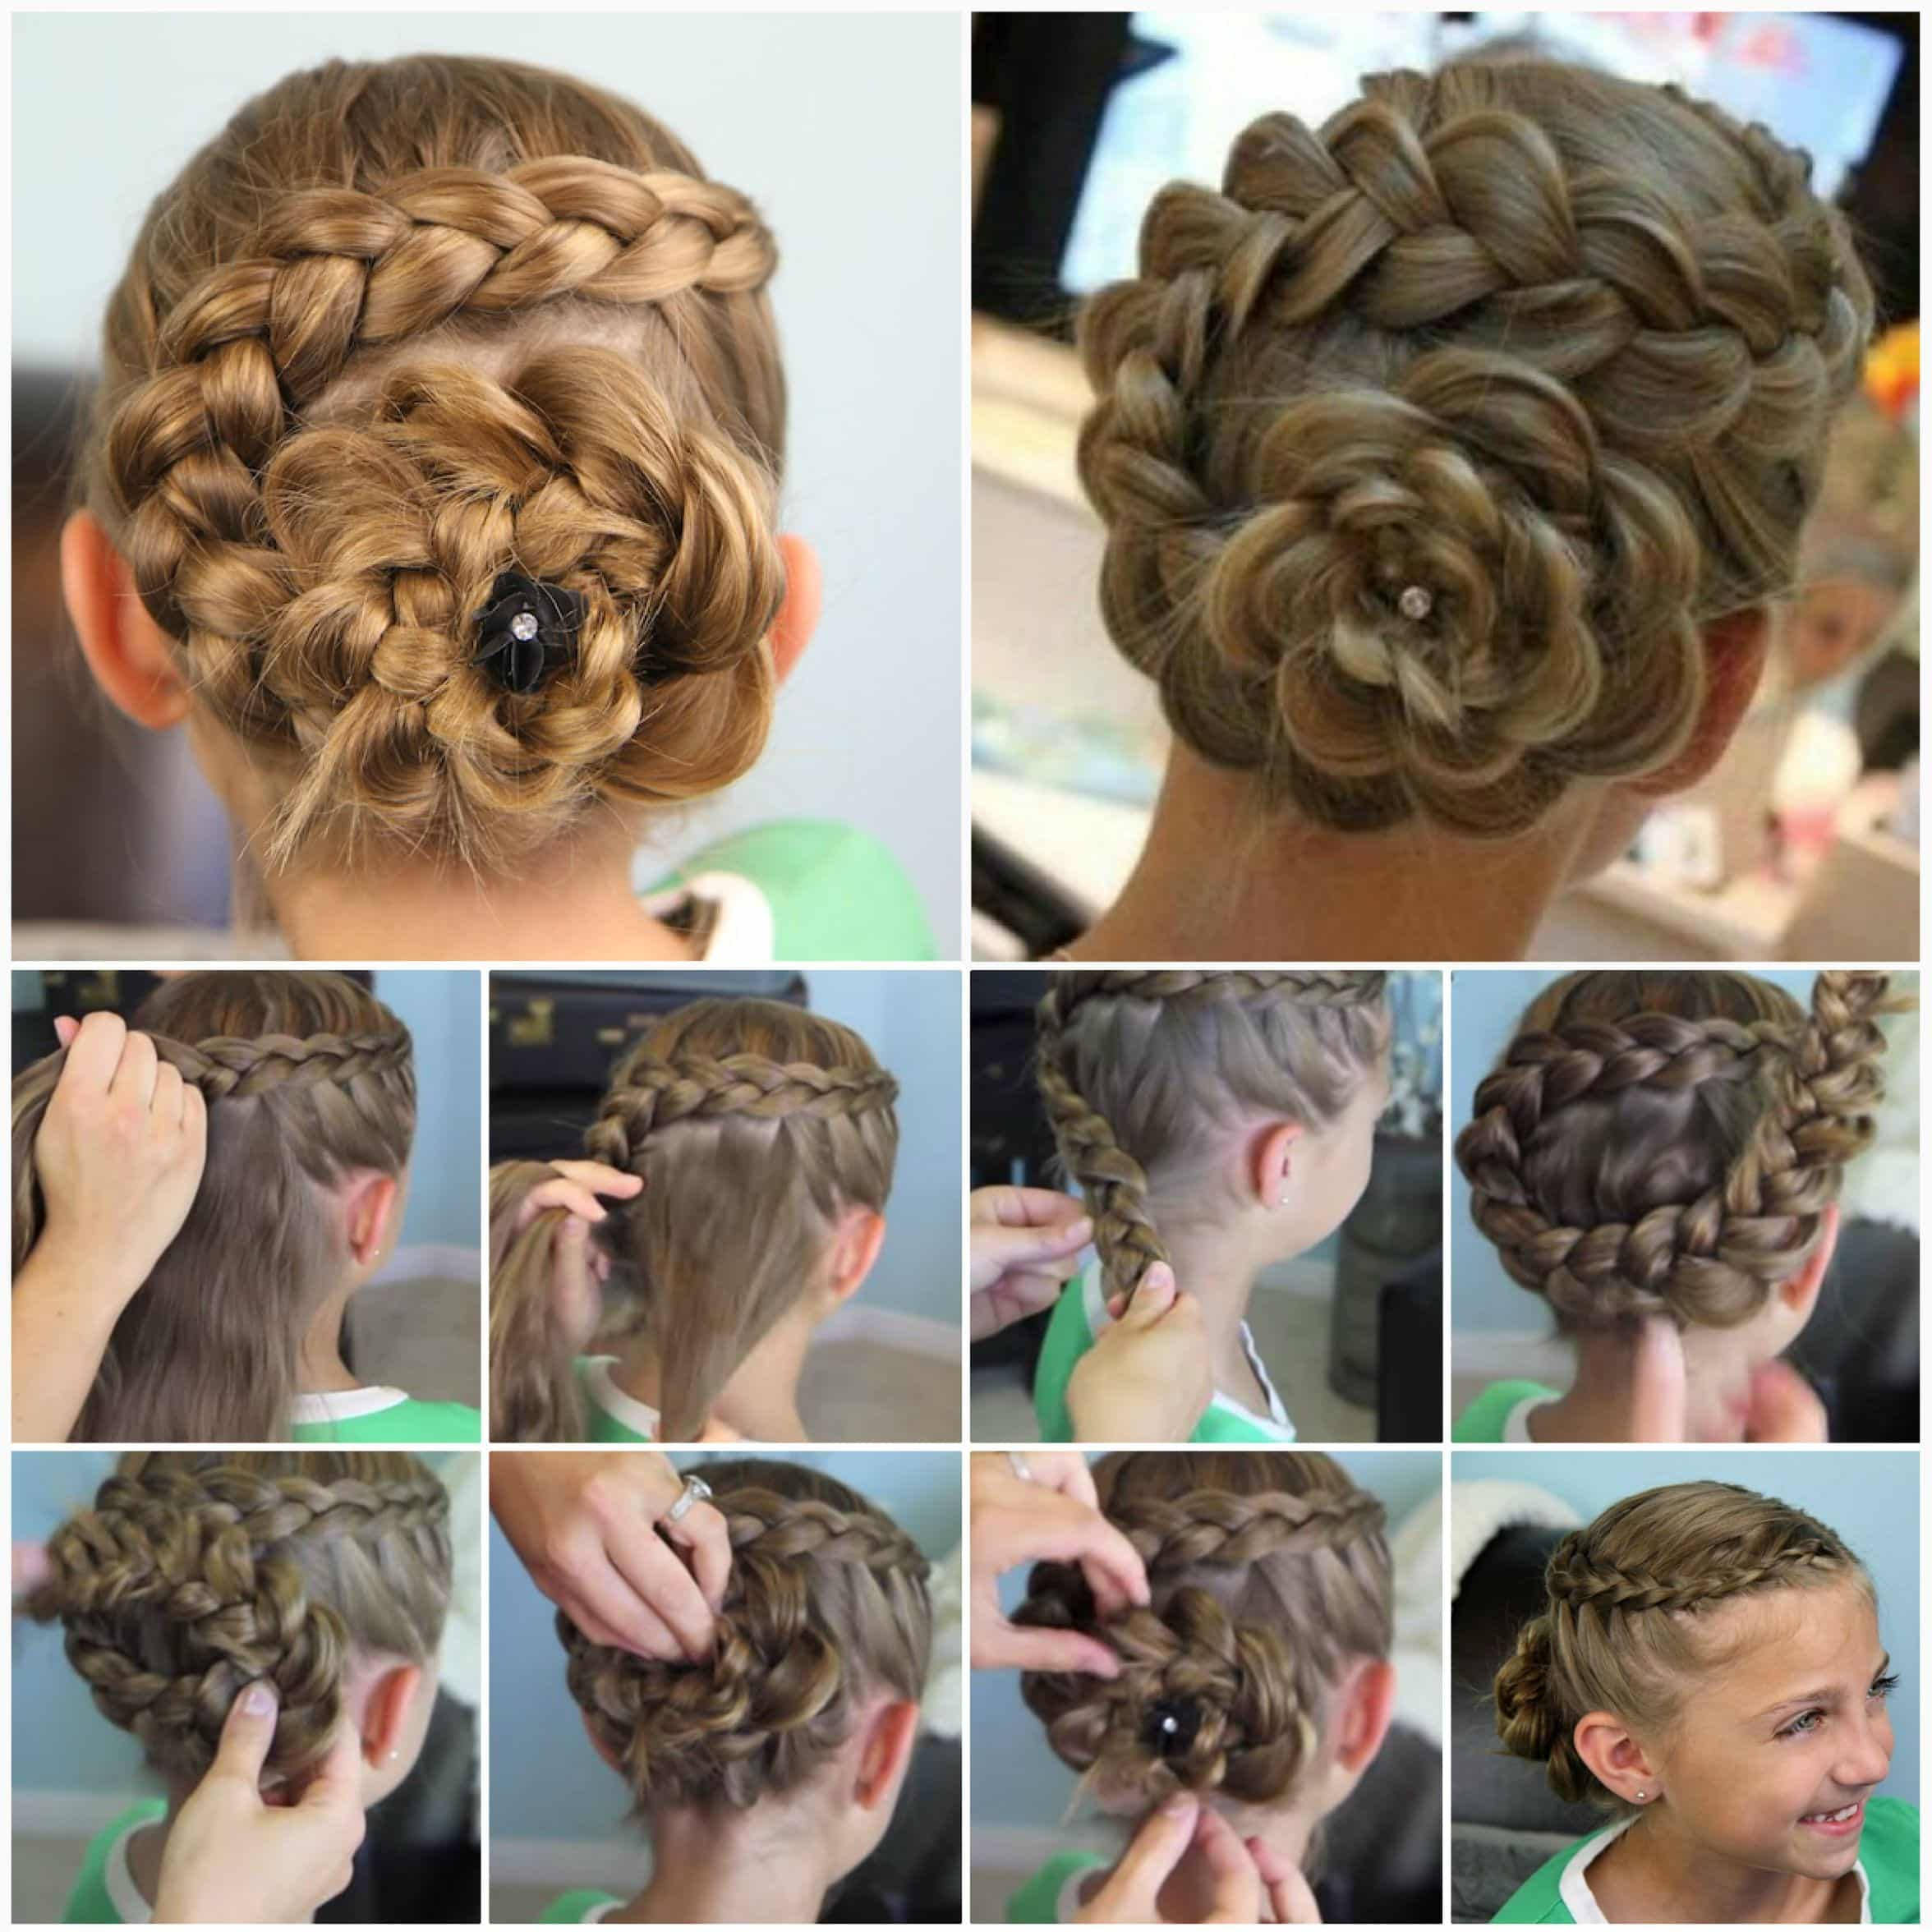 ... Styling Ideas For Girls Dutch Flower Braid